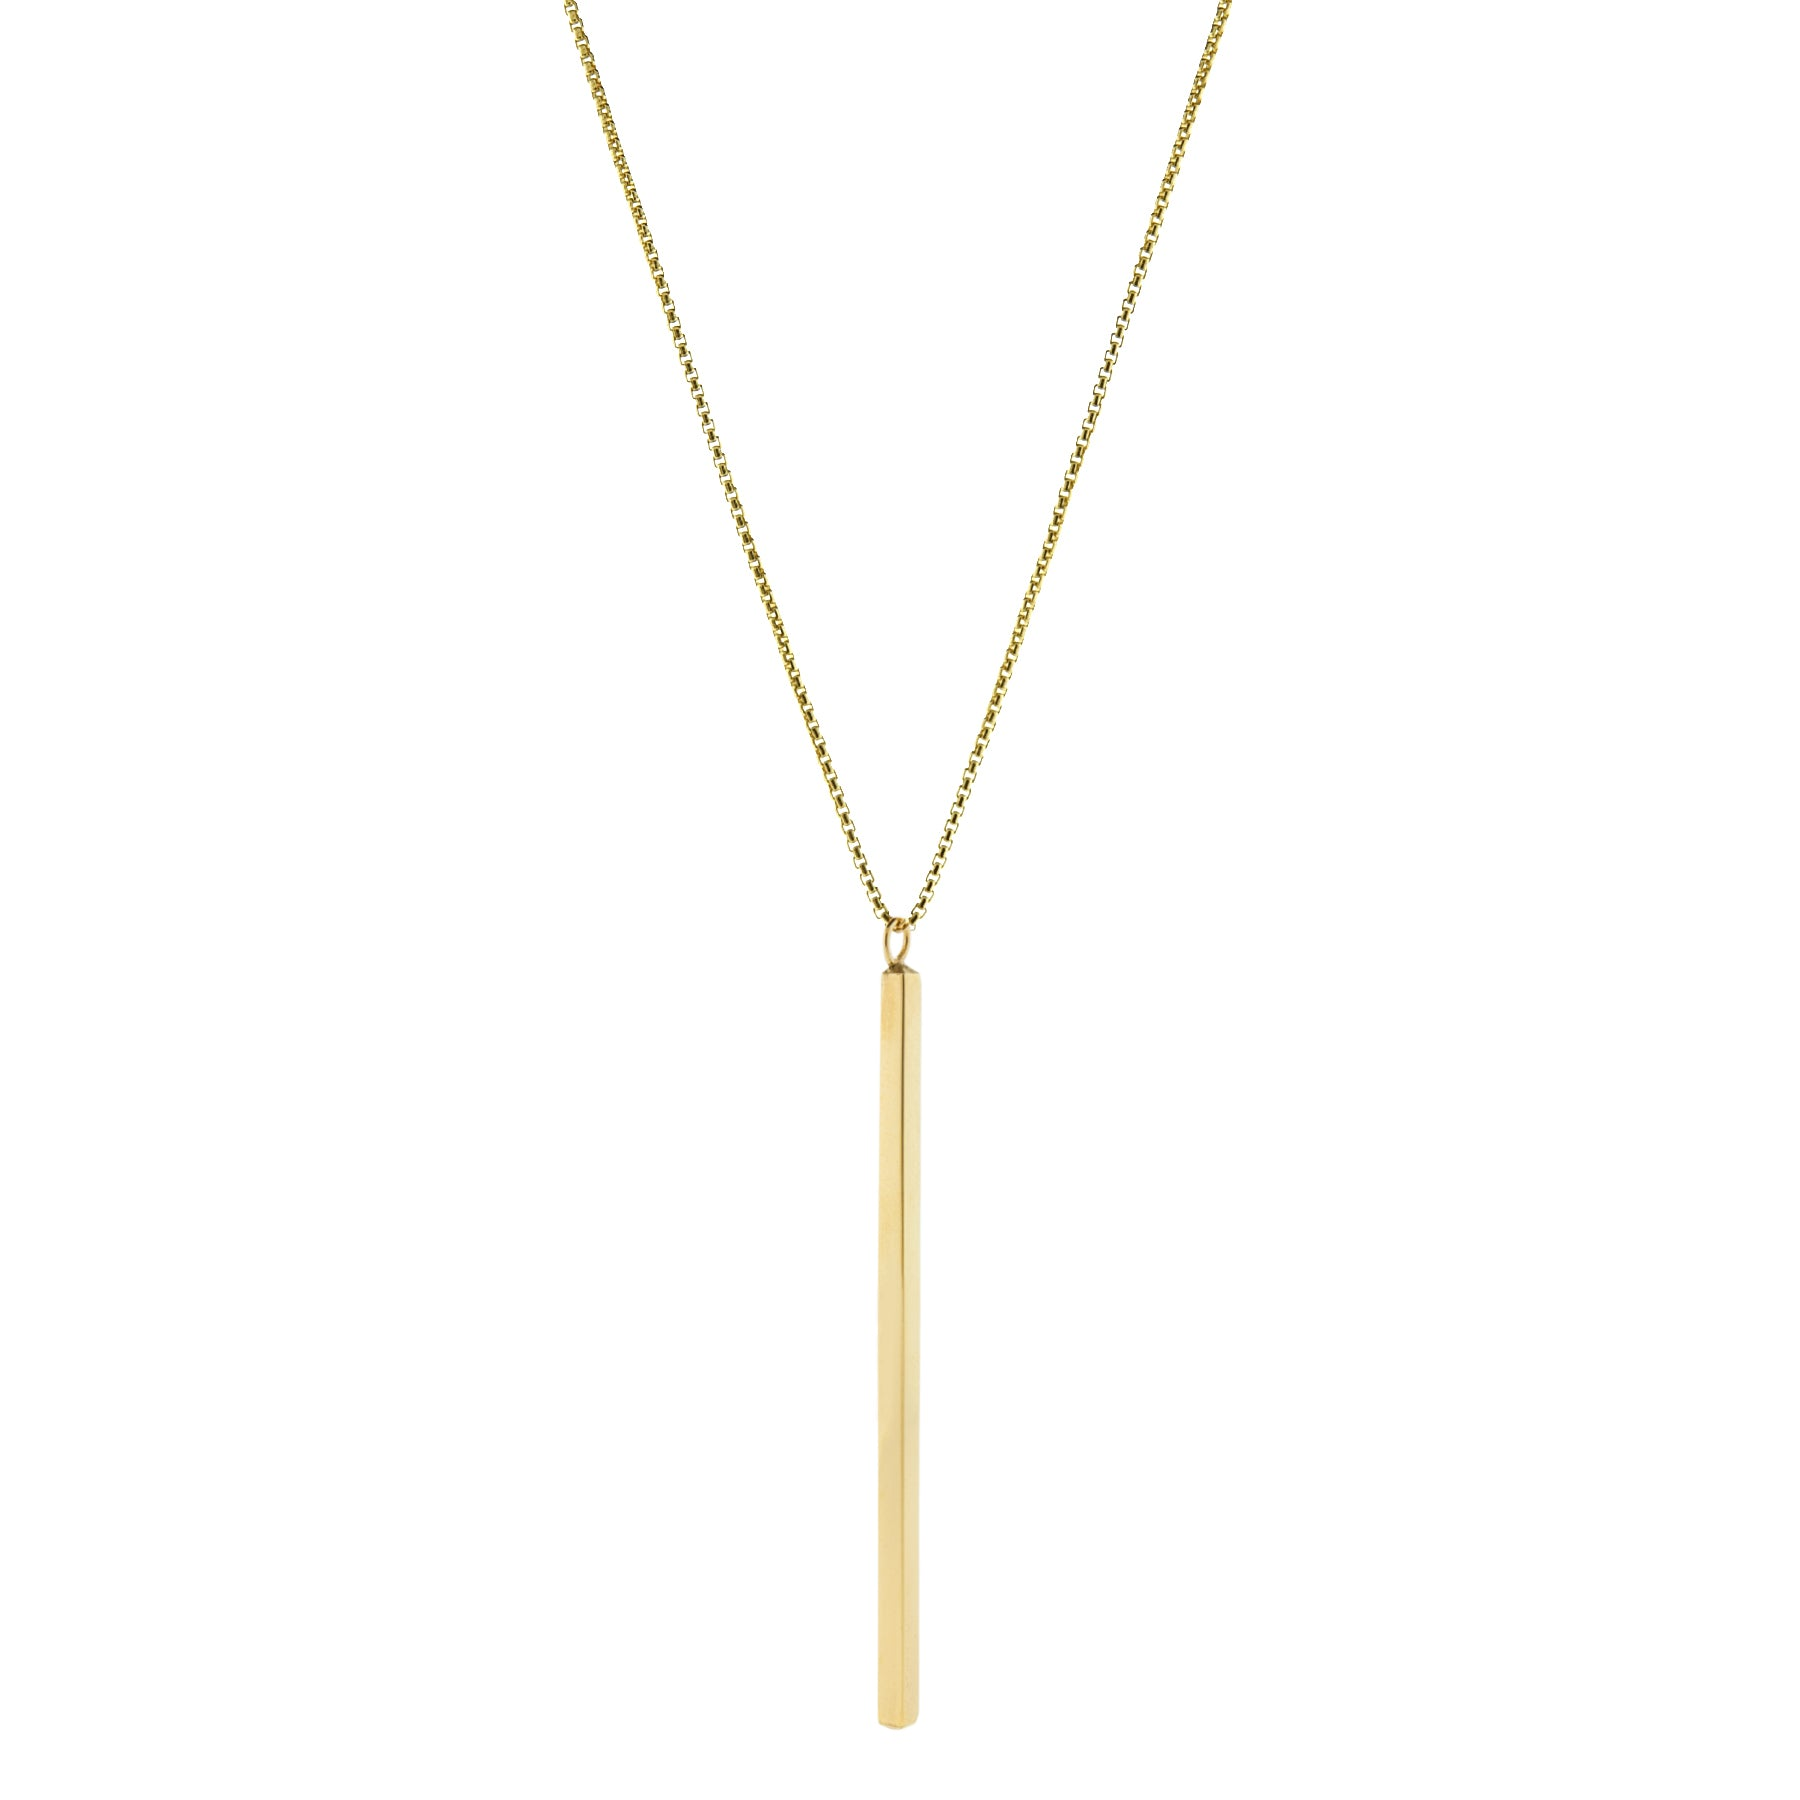 A long slender vertical gold pendant with inscription on a gold chain